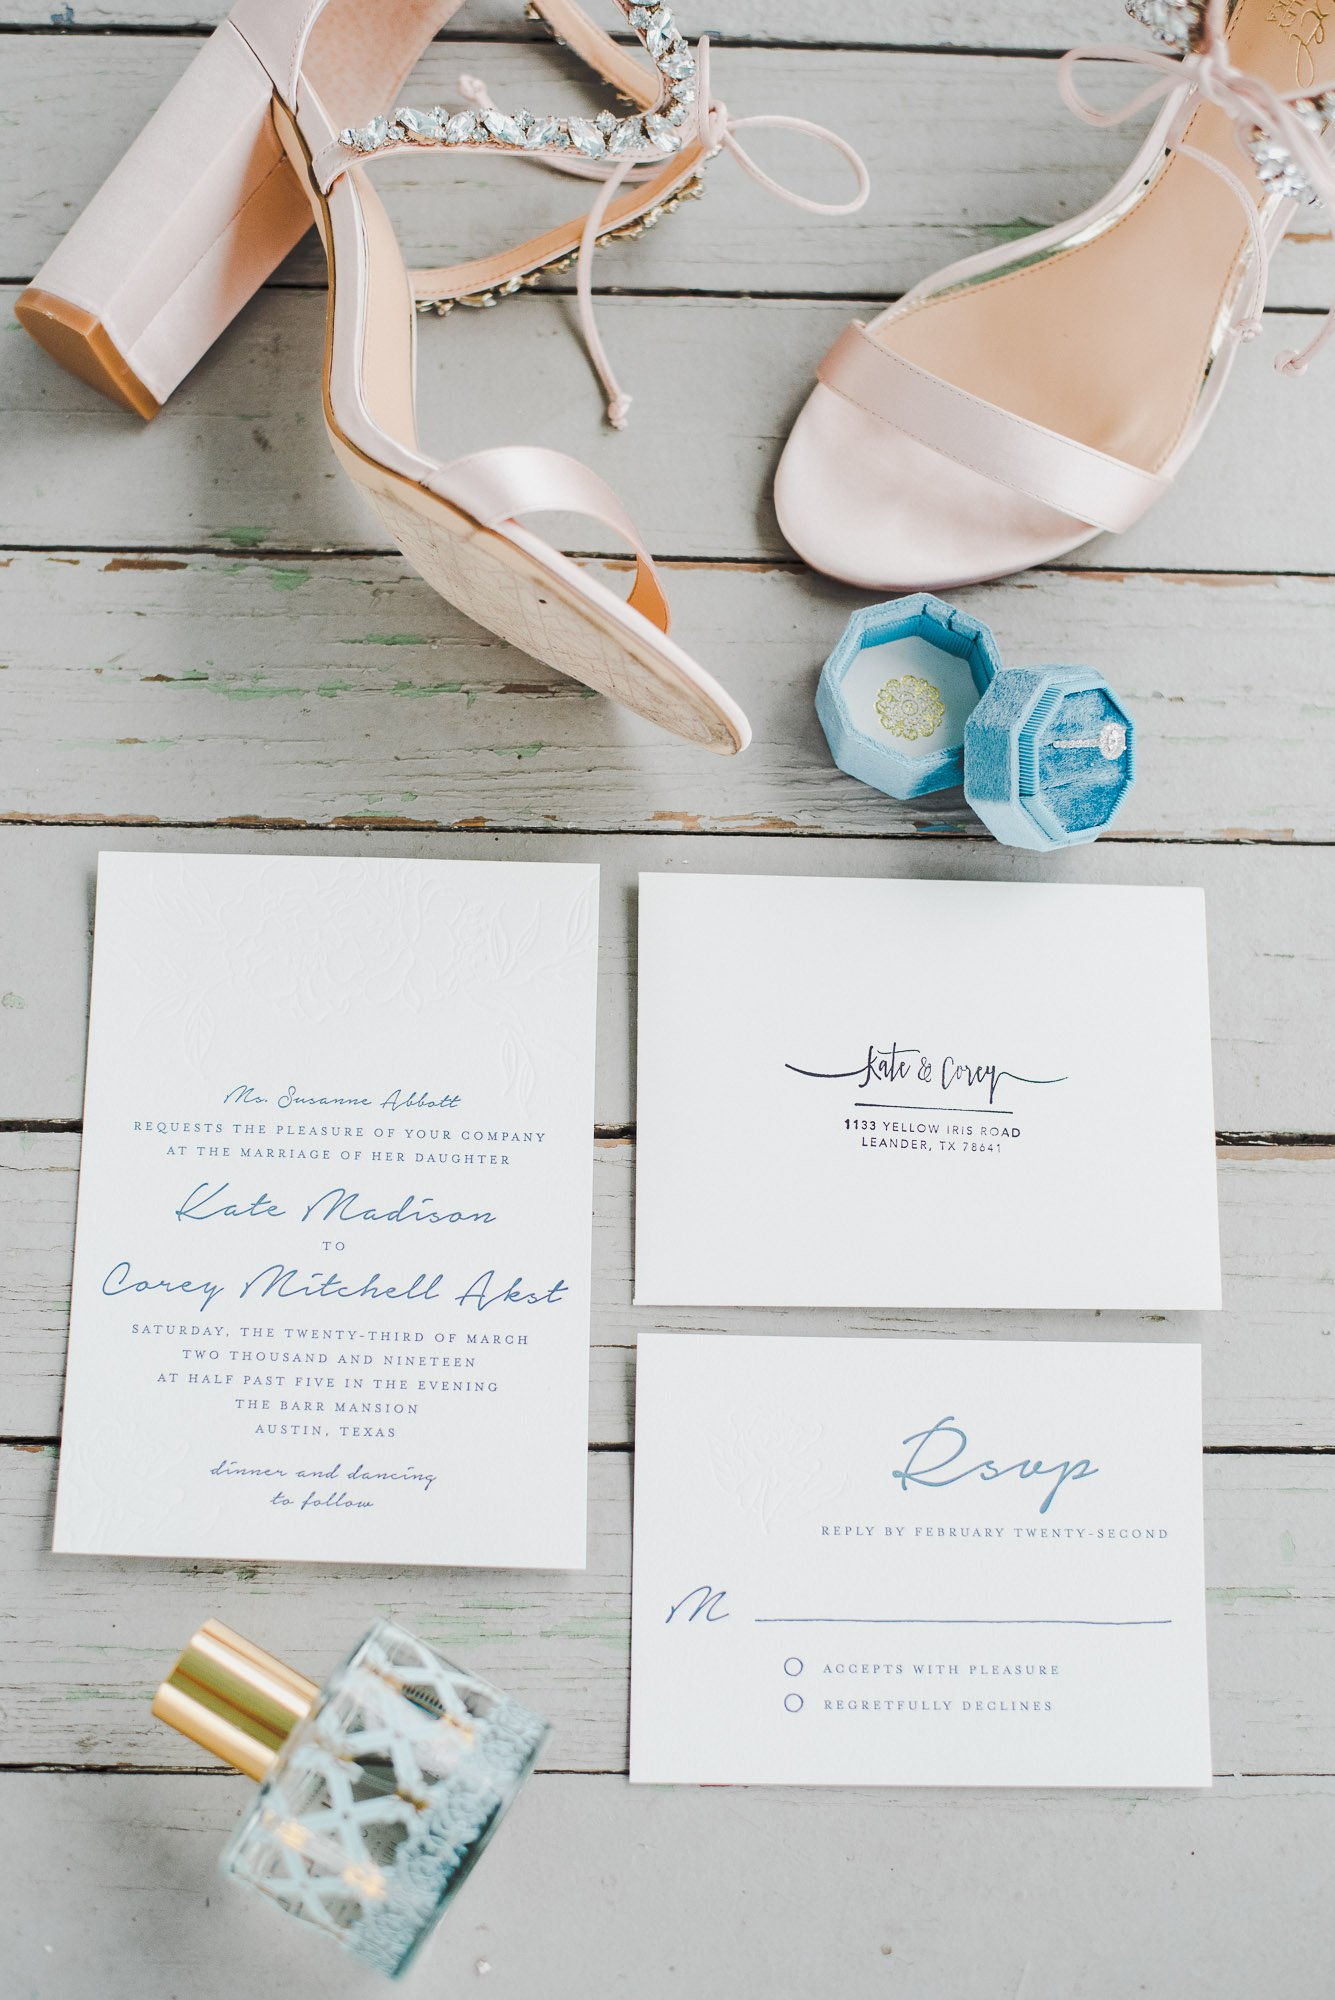 wedding details with pink shoes and simple invitation